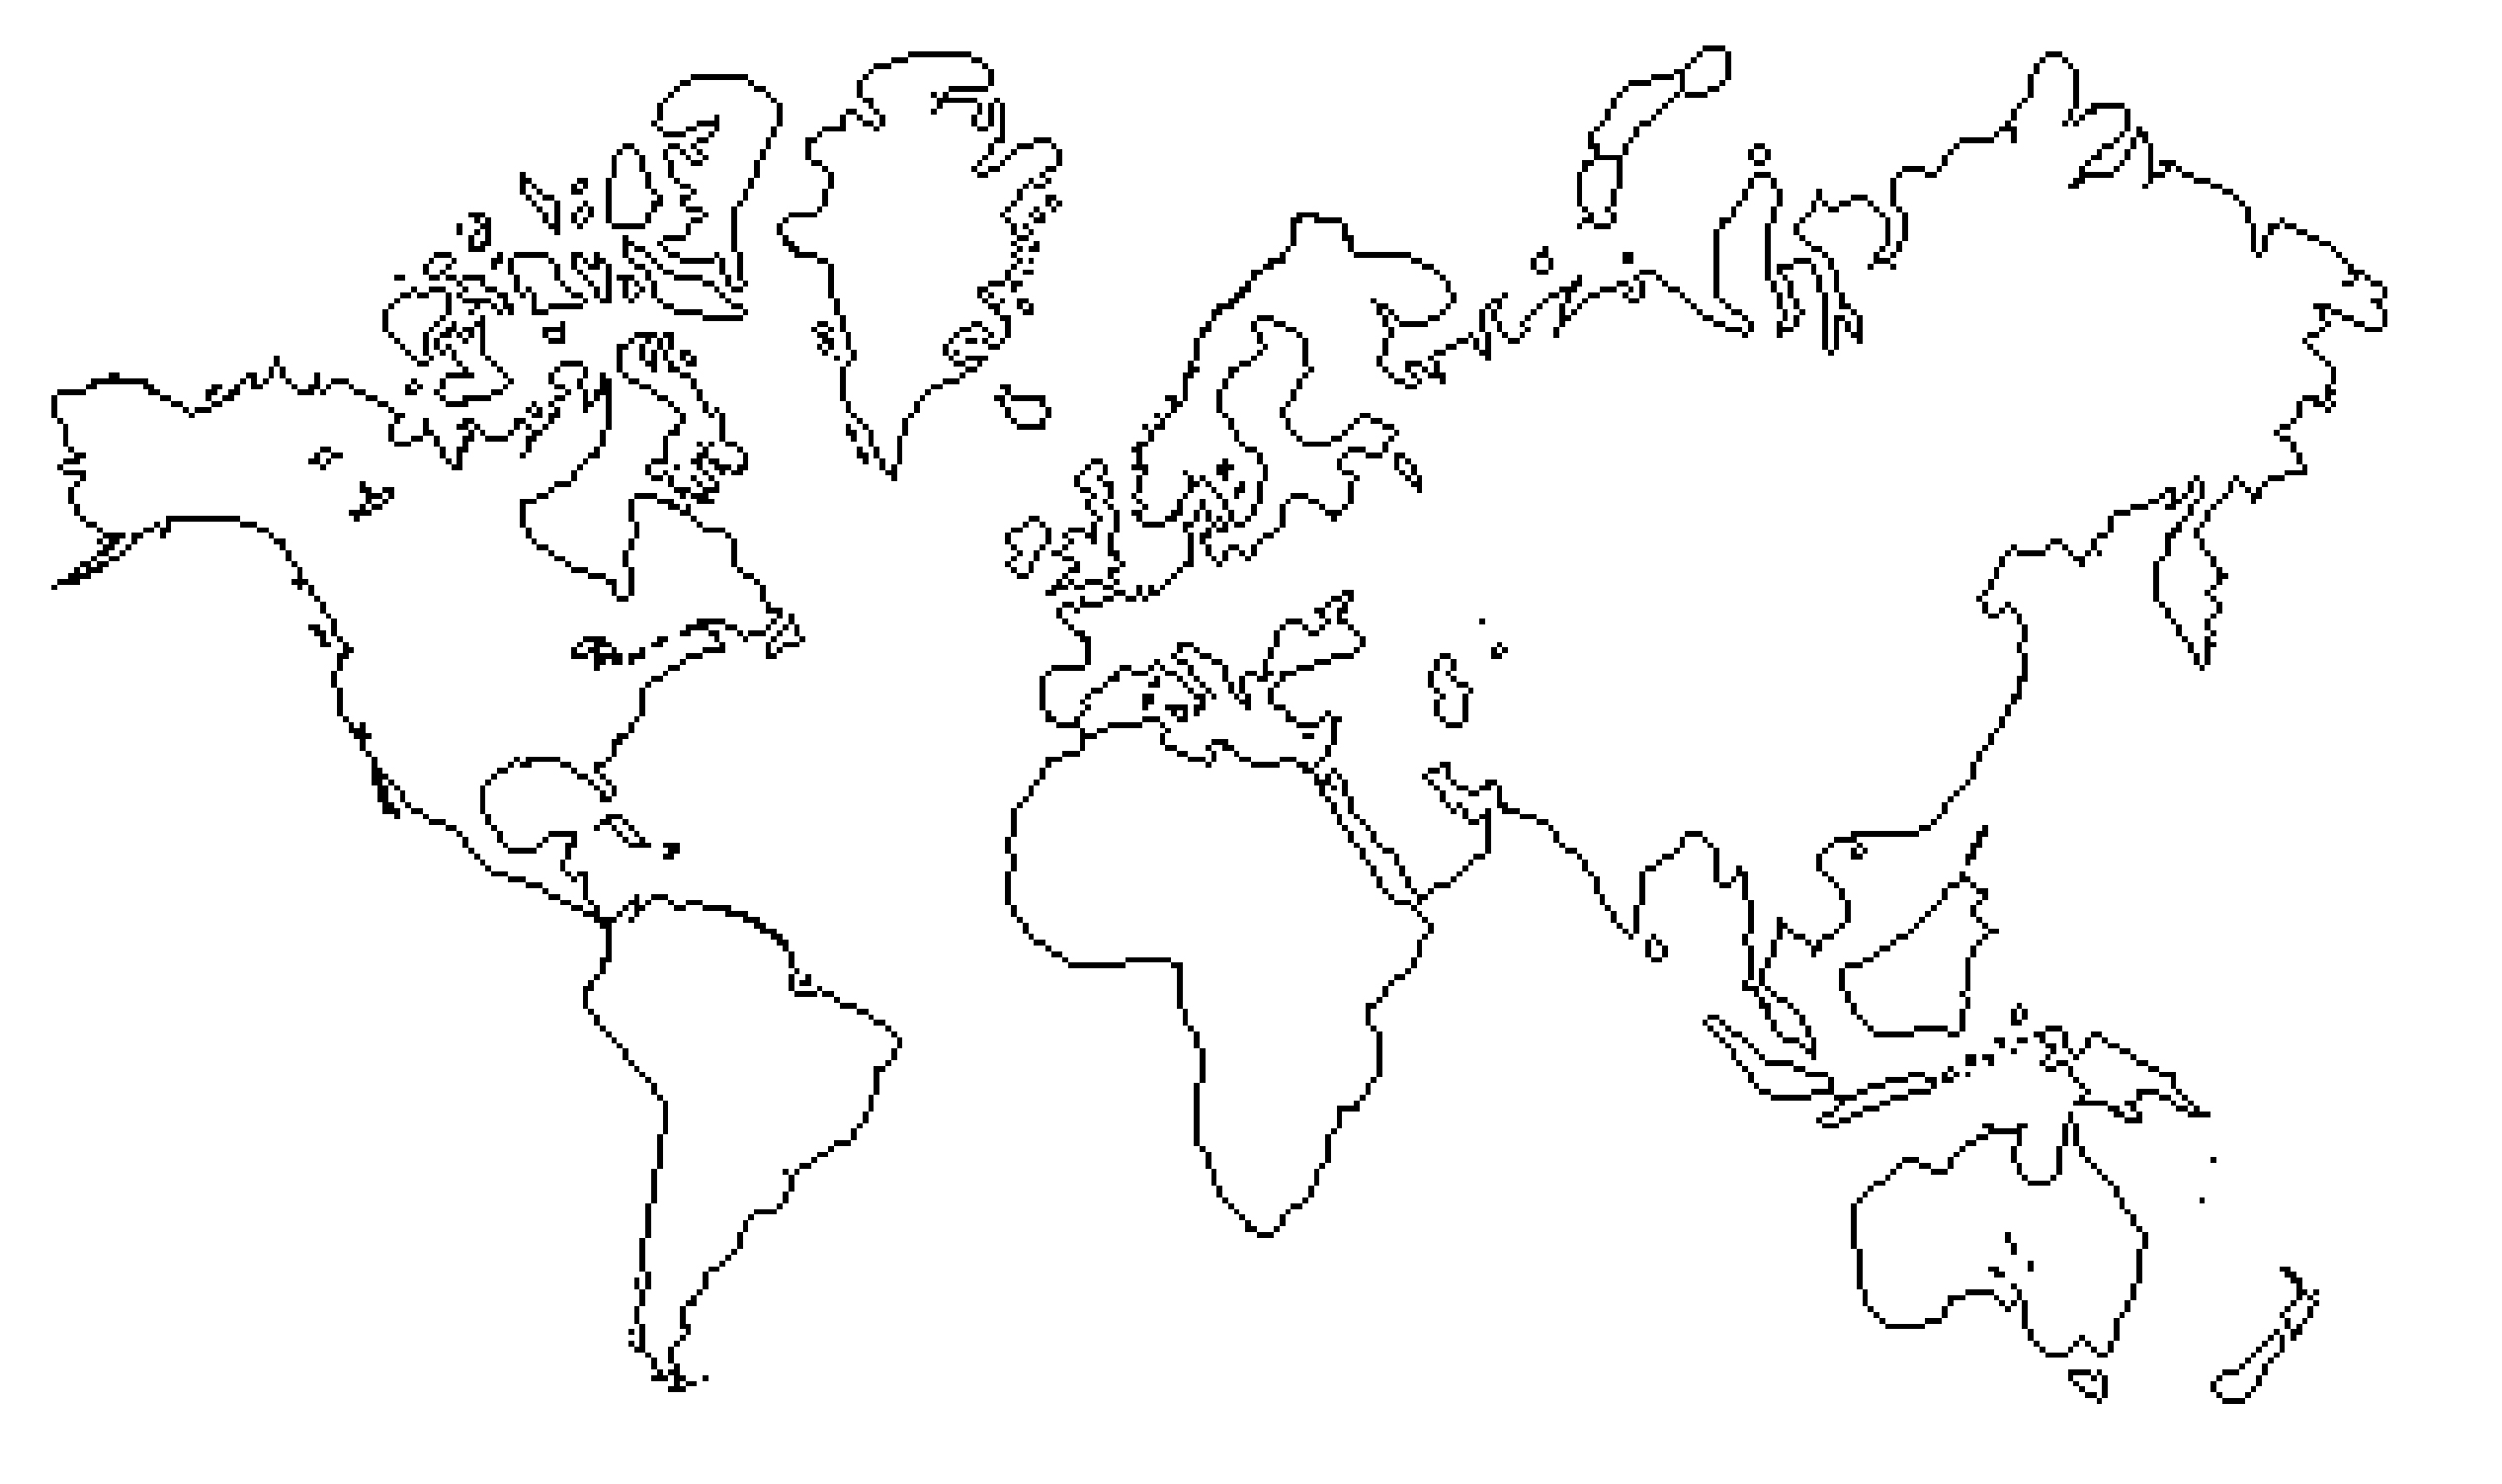 How To Draw Usa Map.Map Of Usa Drawing At Getdrawings Com Free For Personal Use Map Of